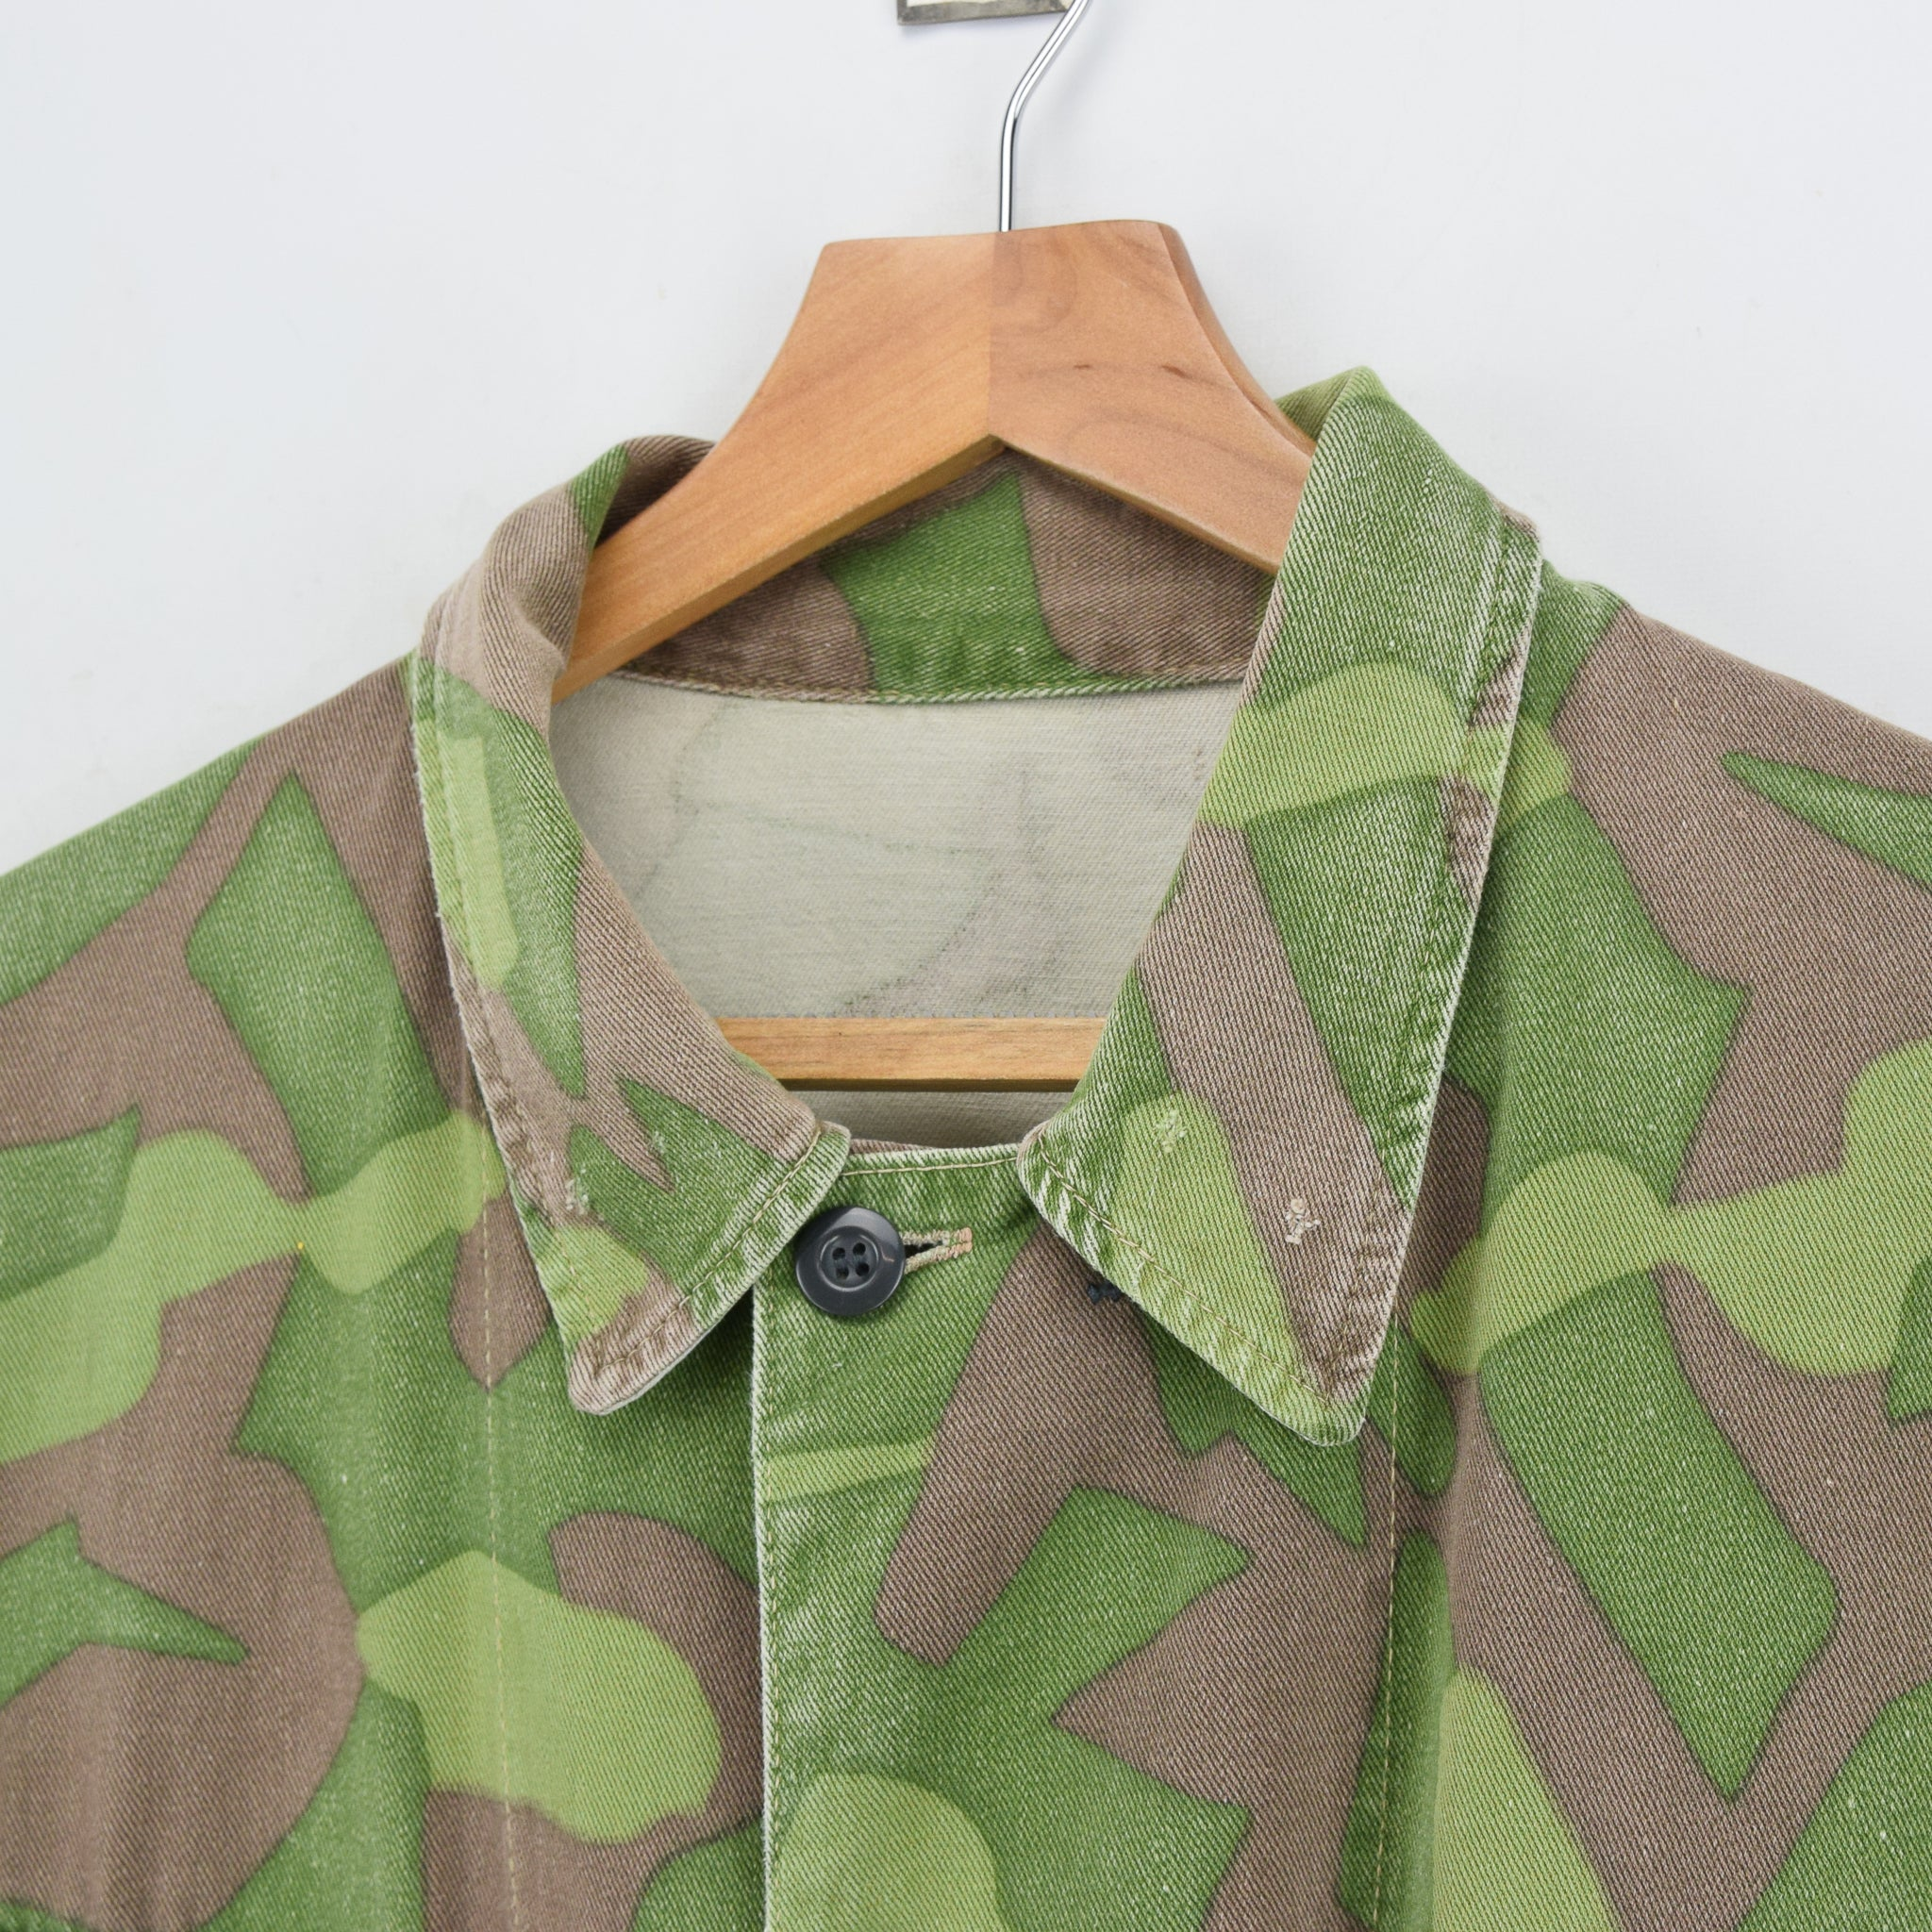 Vintage 60s Military Finnish Army Green Camo Mountain Field Jacket XL collar